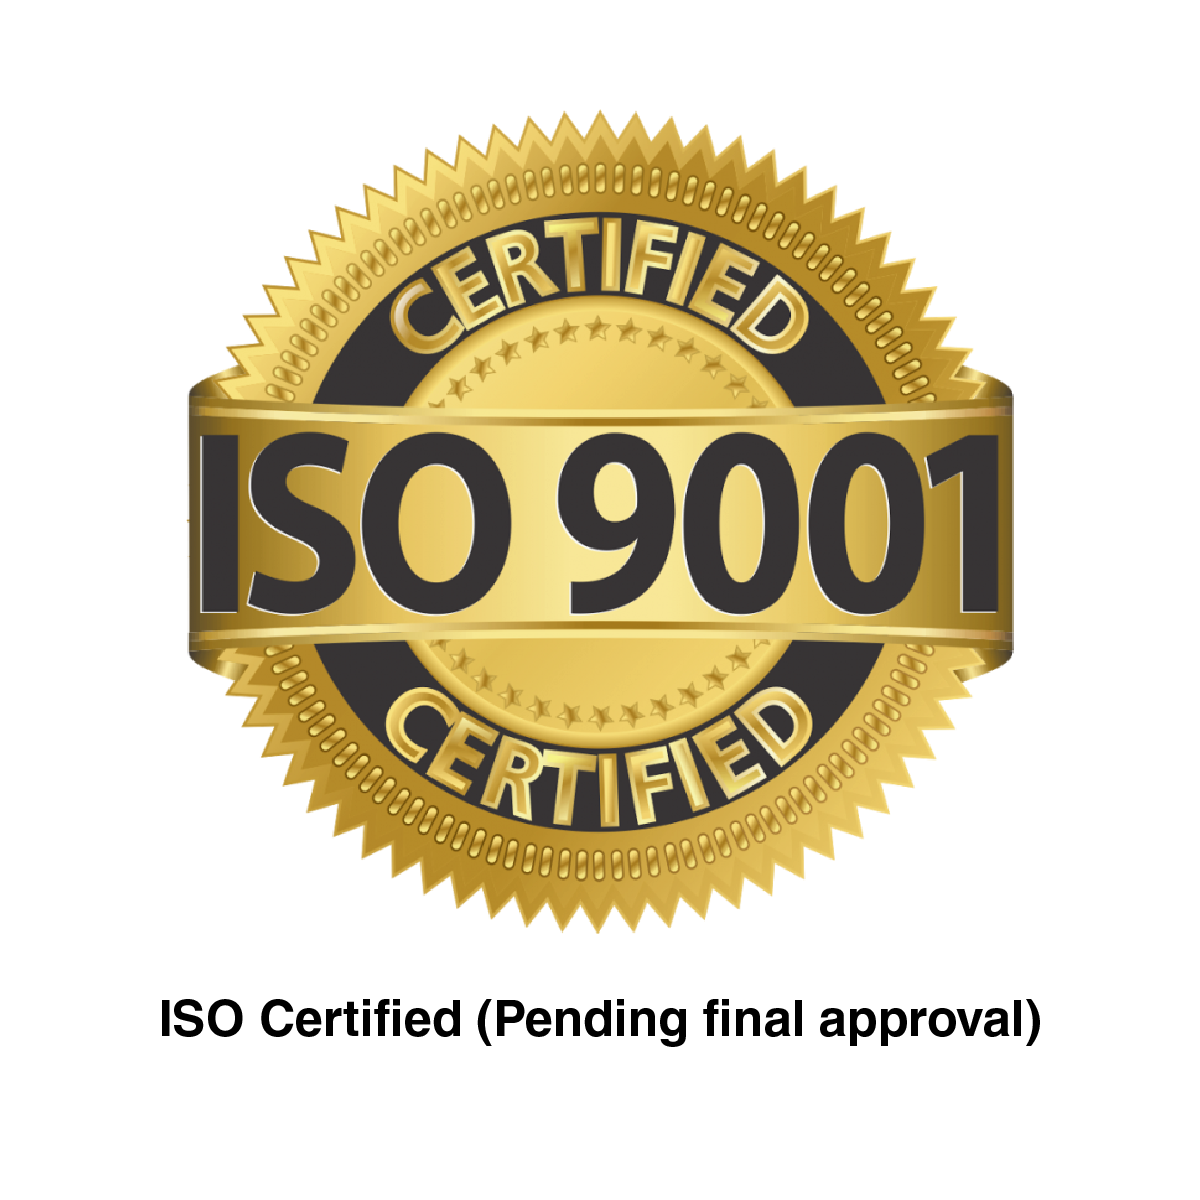 ISOCertified-01.png